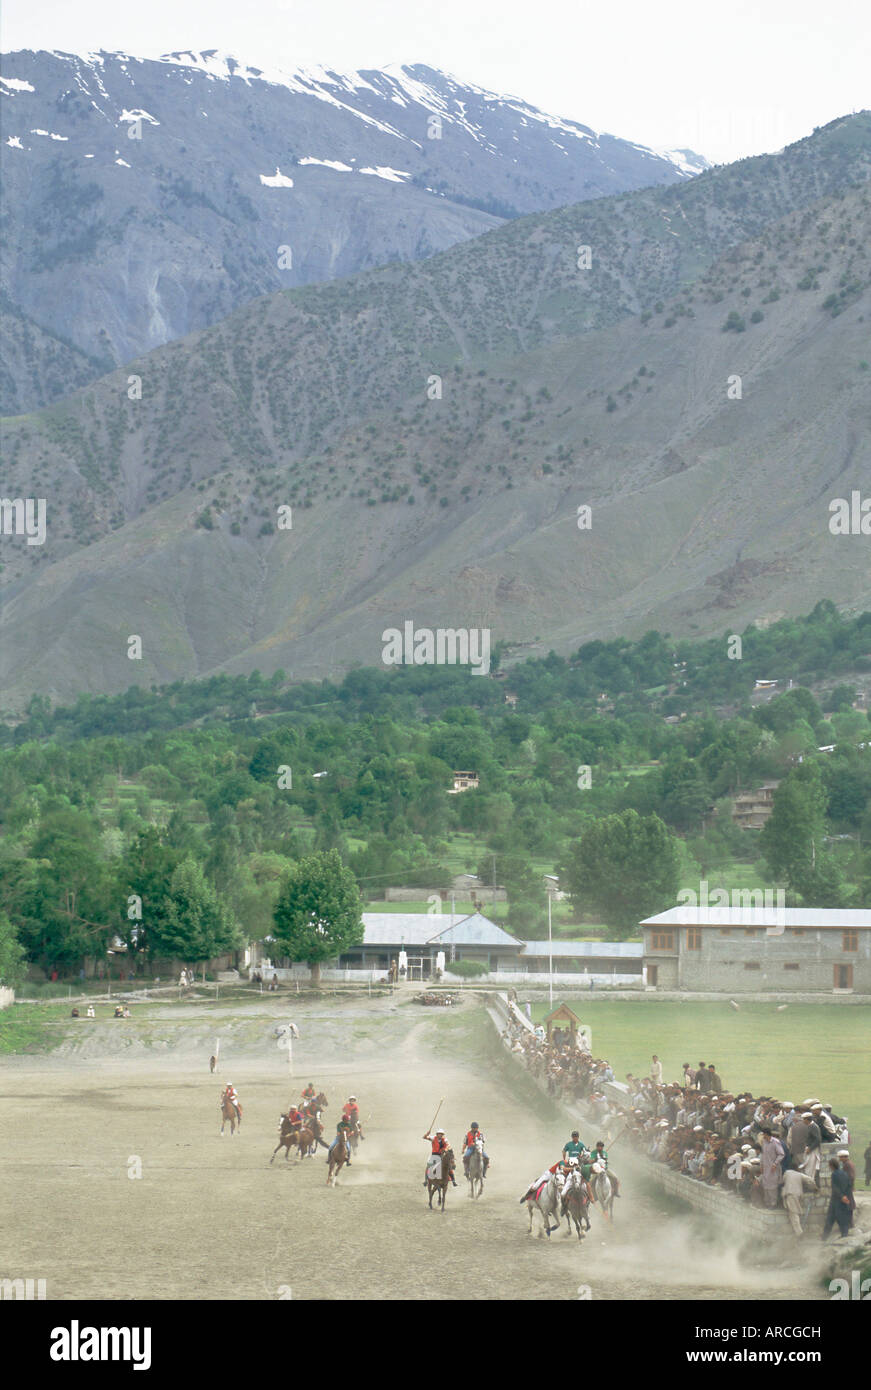 The birthplace of polo, Chitral, North West Frontier Province, Pakistan, Asia - Stock Image